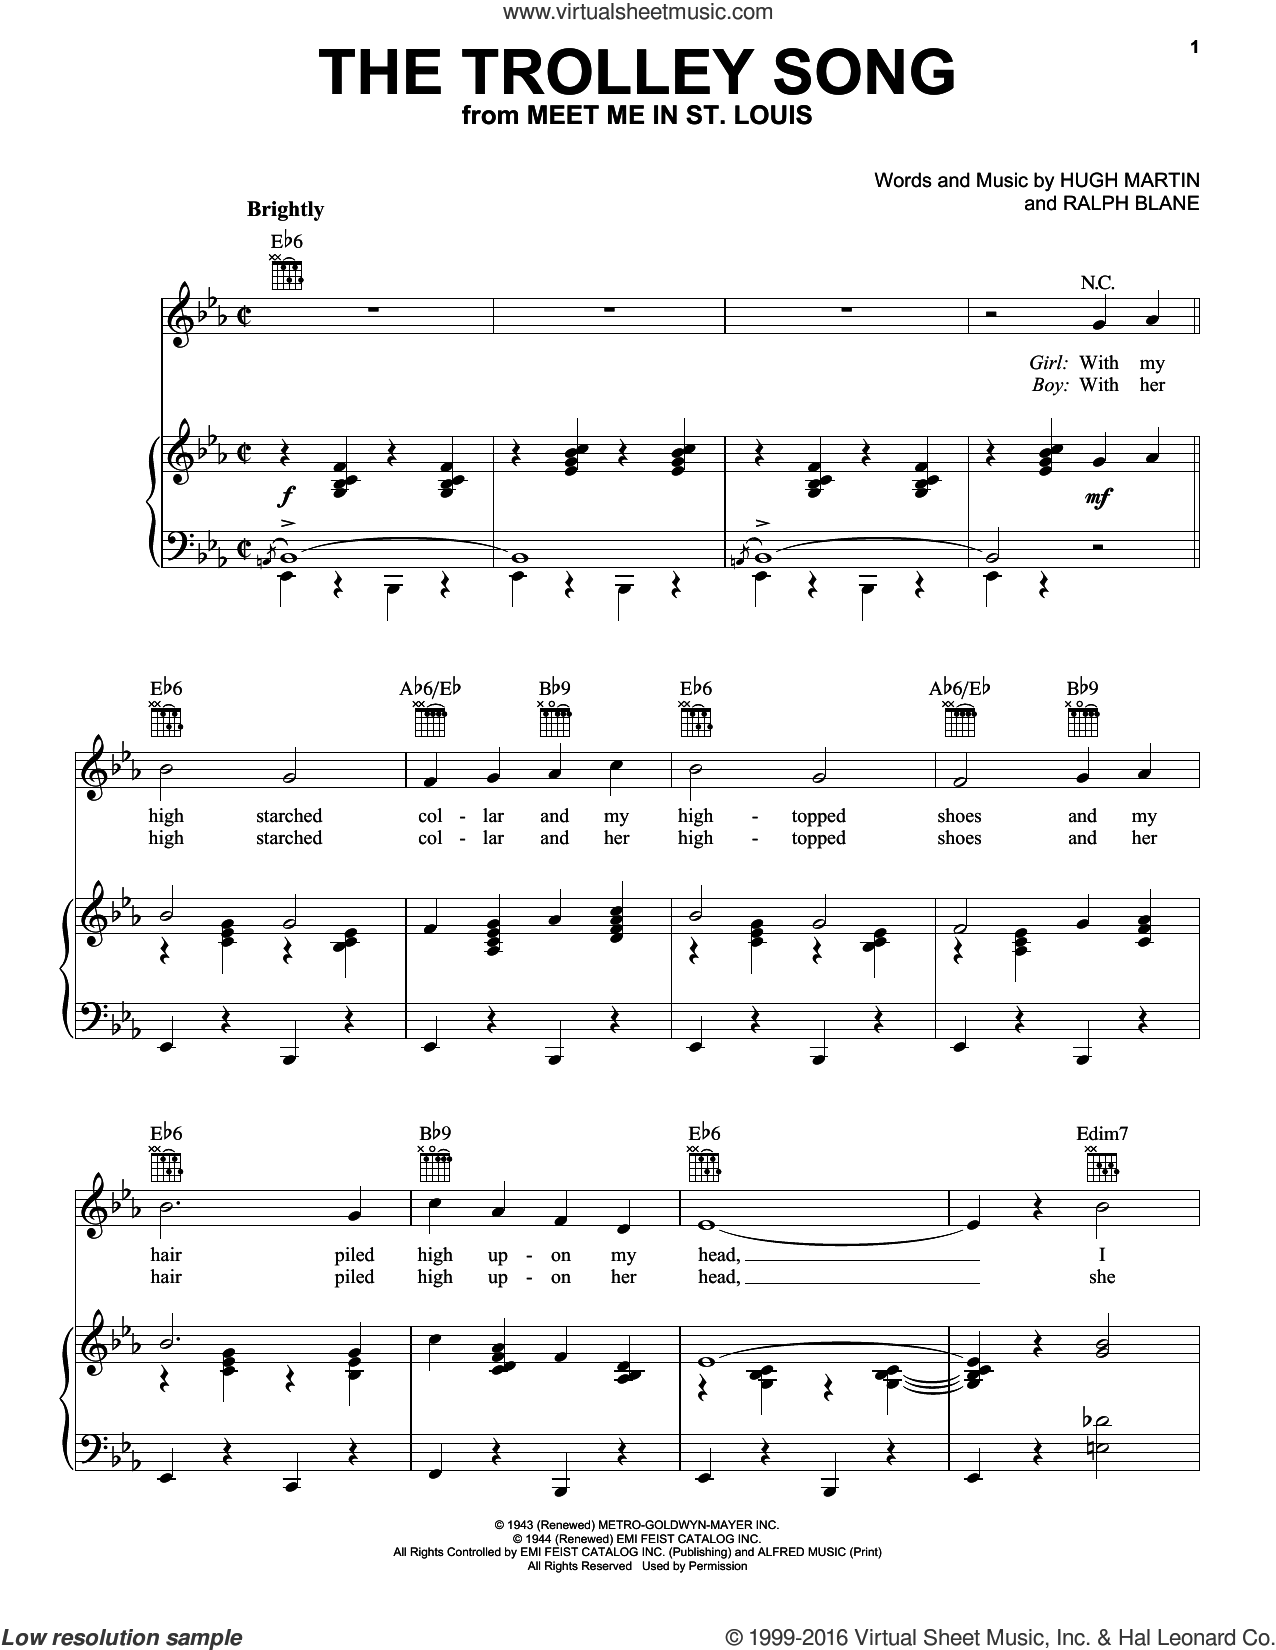 The Trolley Song sheet music for voice, piano or guitar by Ralph Blane